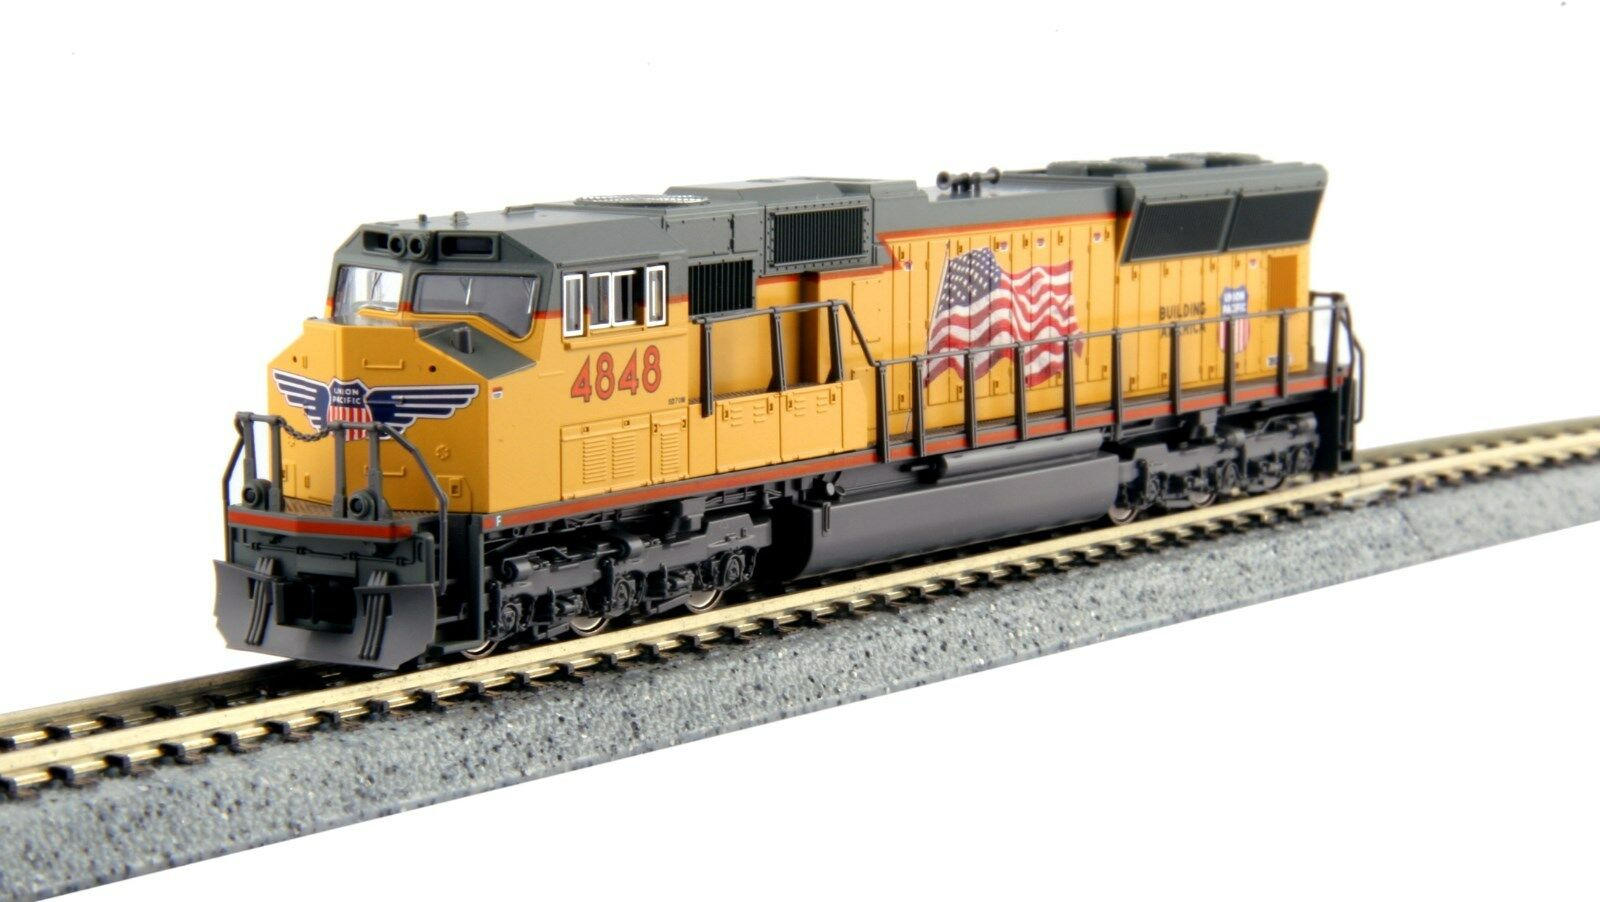 Kato N  176-8610 DC UNION PACIFIC SD70M  4848   .. DC or DCC(tcs or digitrax)